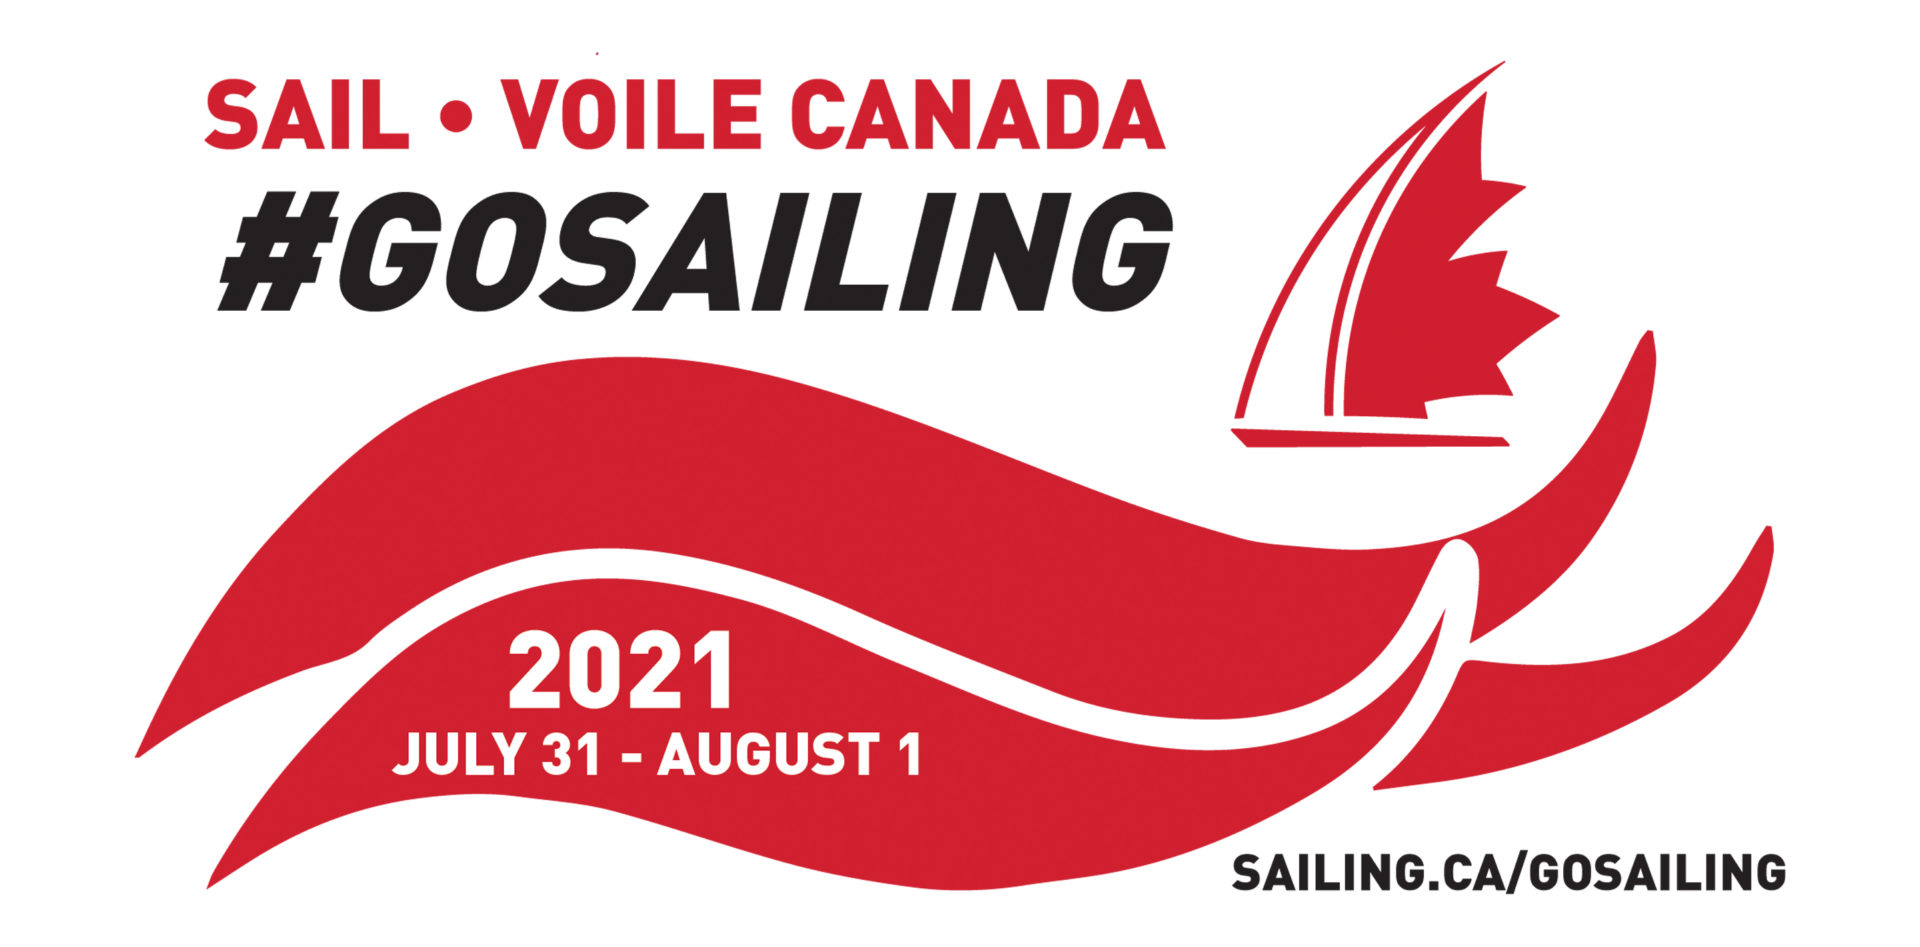 This weekend, #GoSailing across Canada